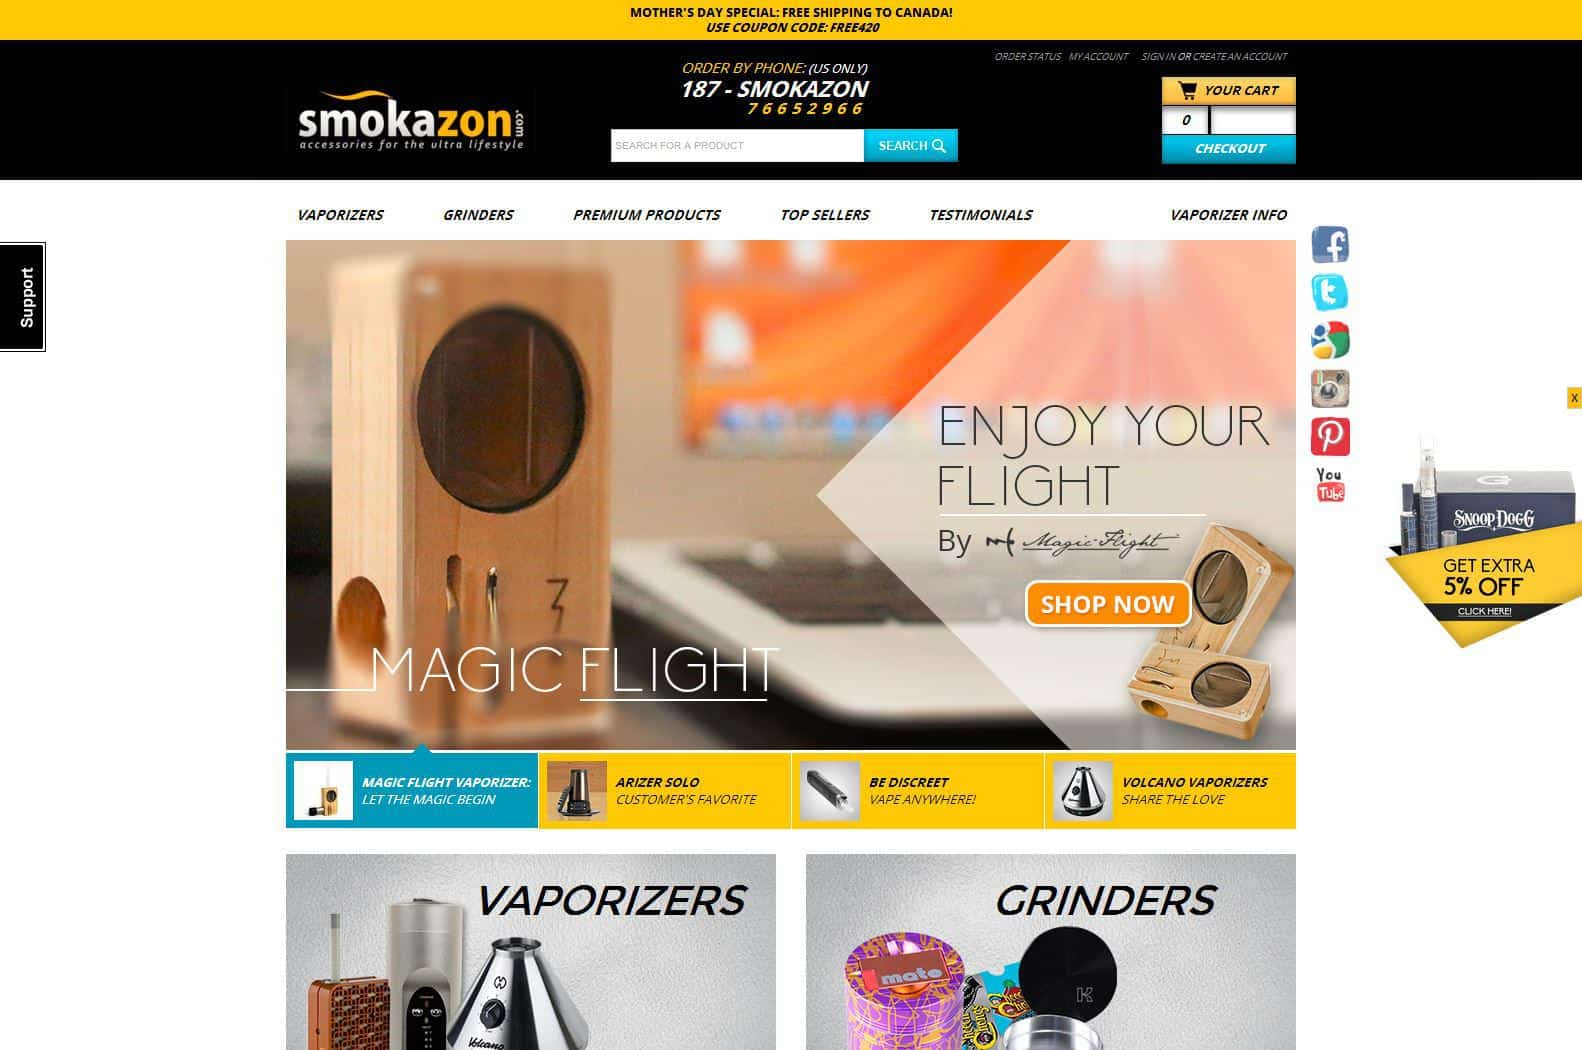 Smokazon - Online Vape Shop - Save On Cannabis Coupon Codes - Vaporizers